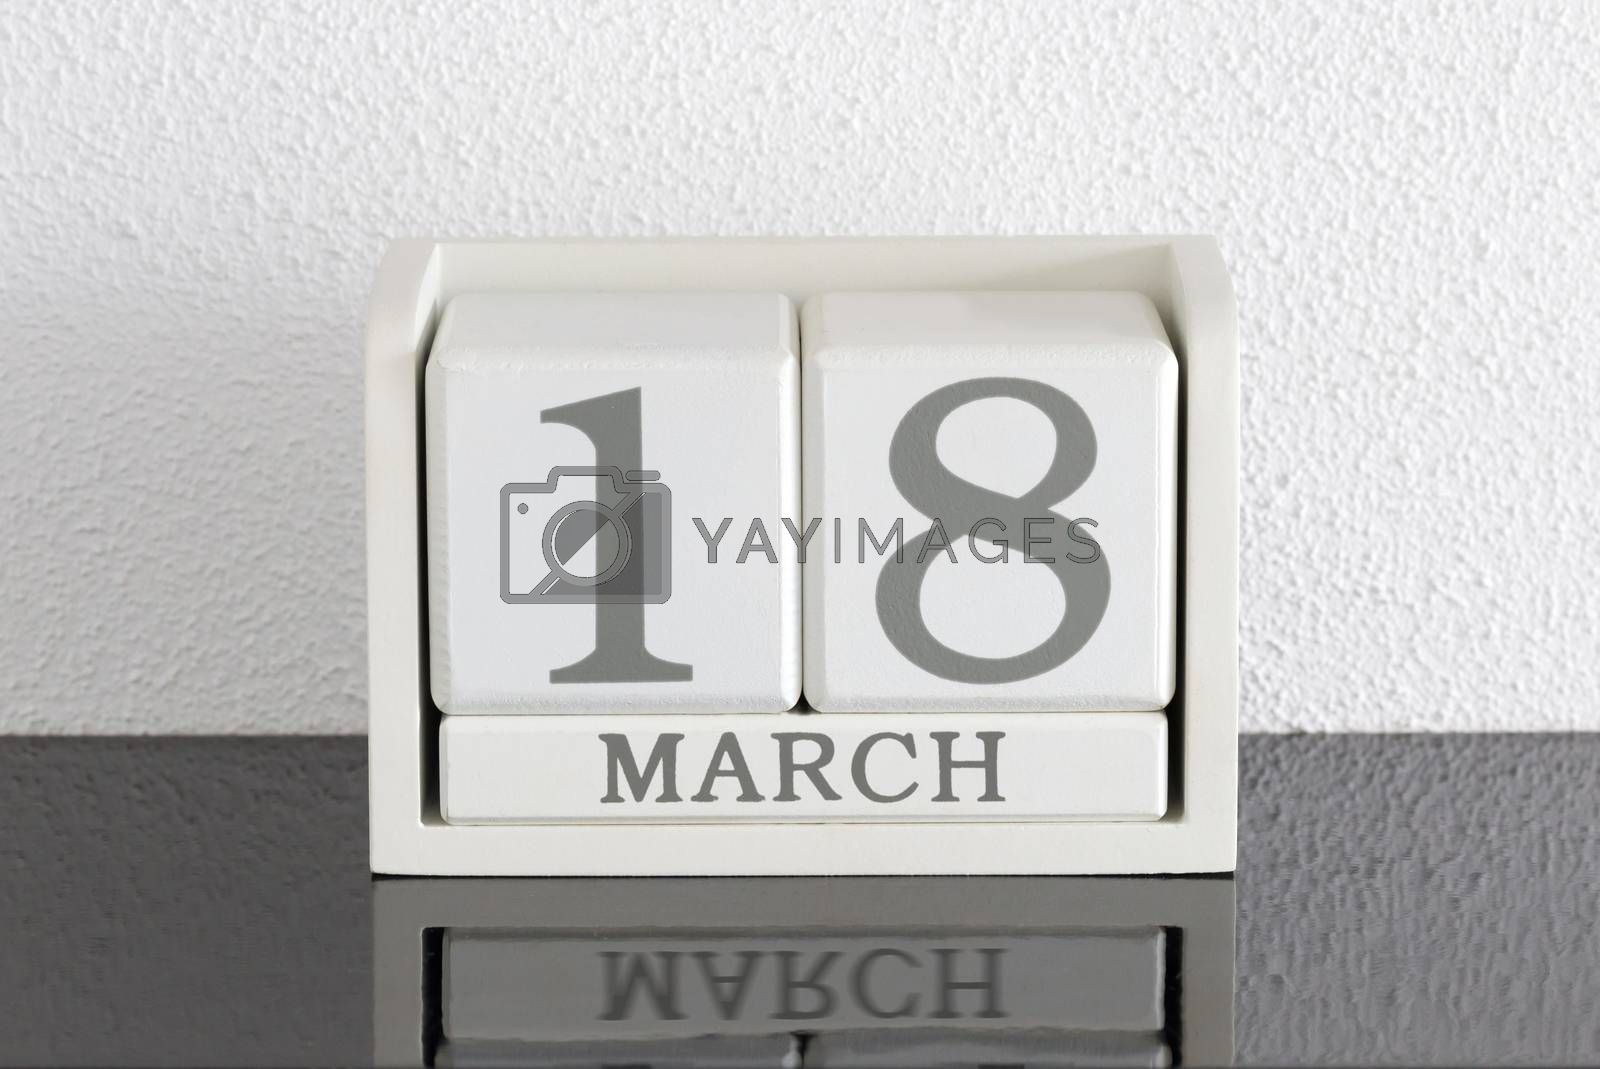 White block calendar present date 18 and month March by michaklootwijk